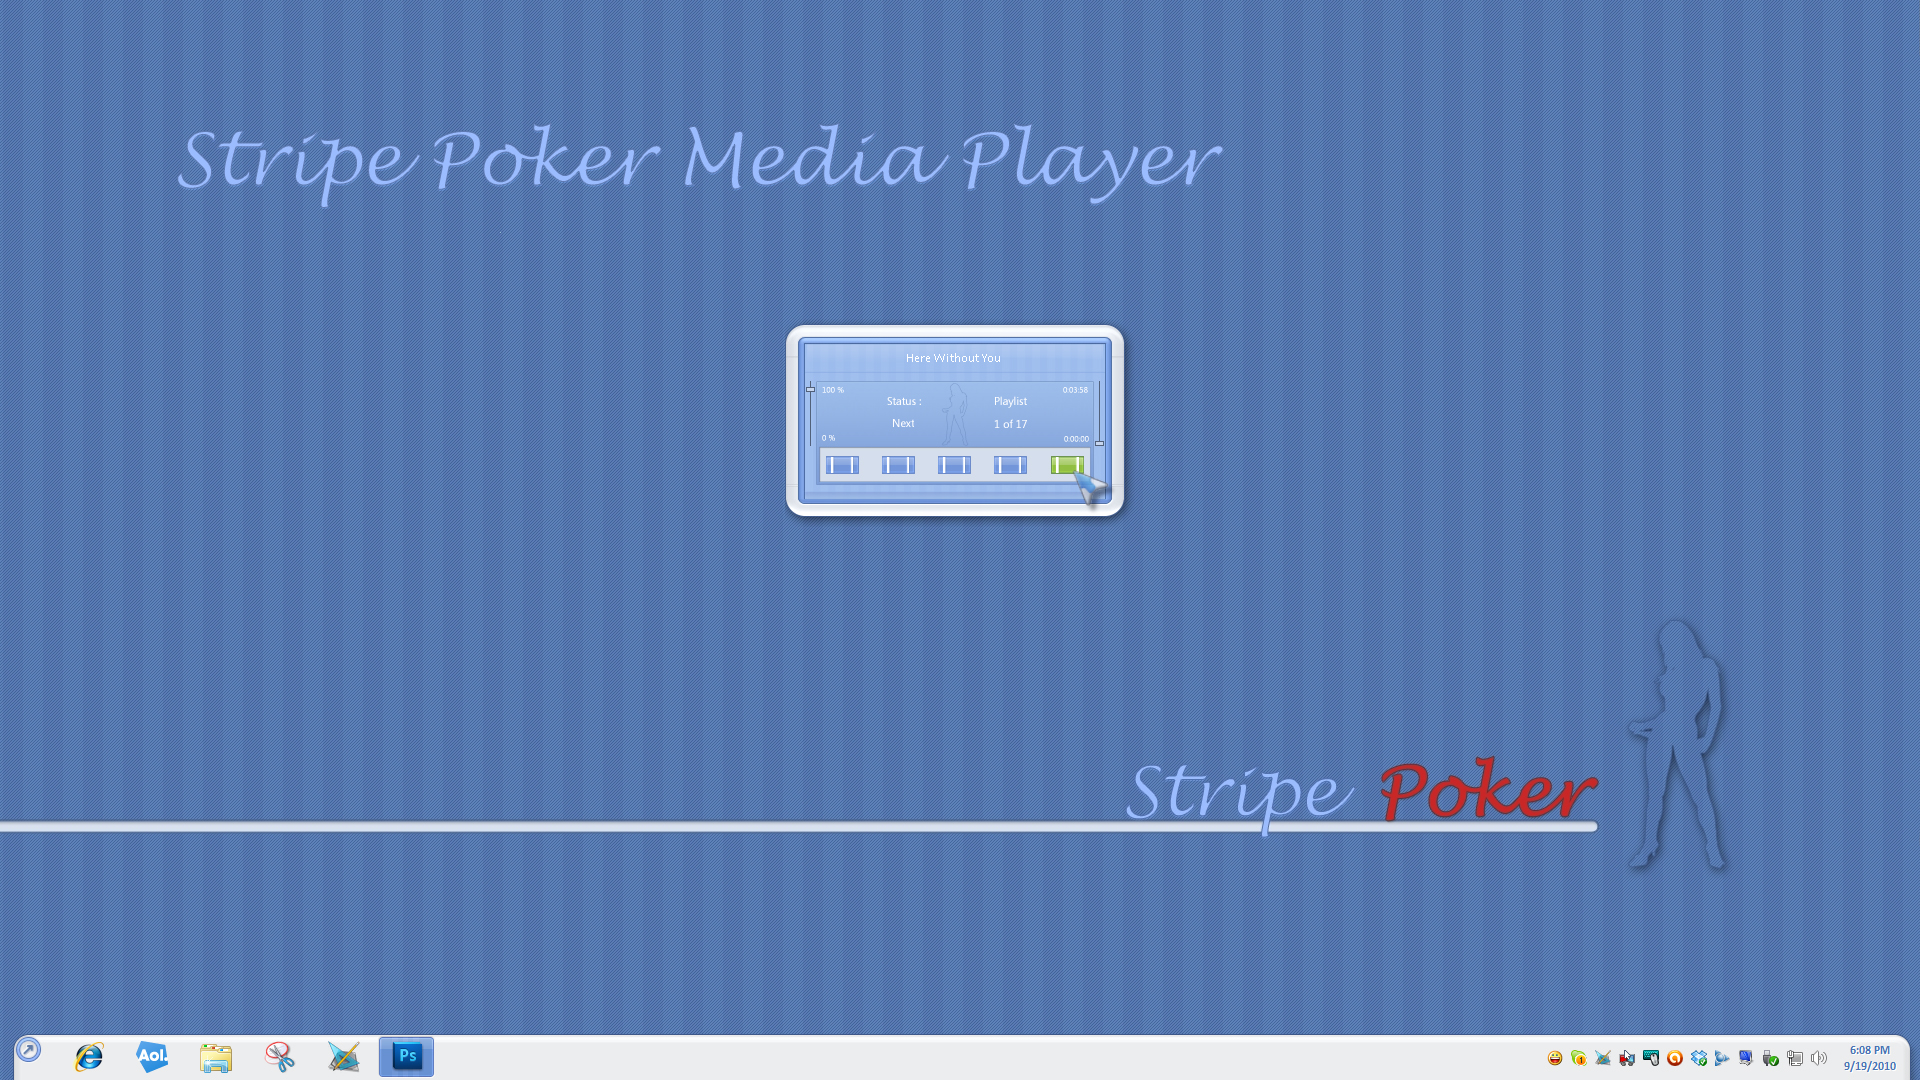 Stripe Poker Media Player Gadget